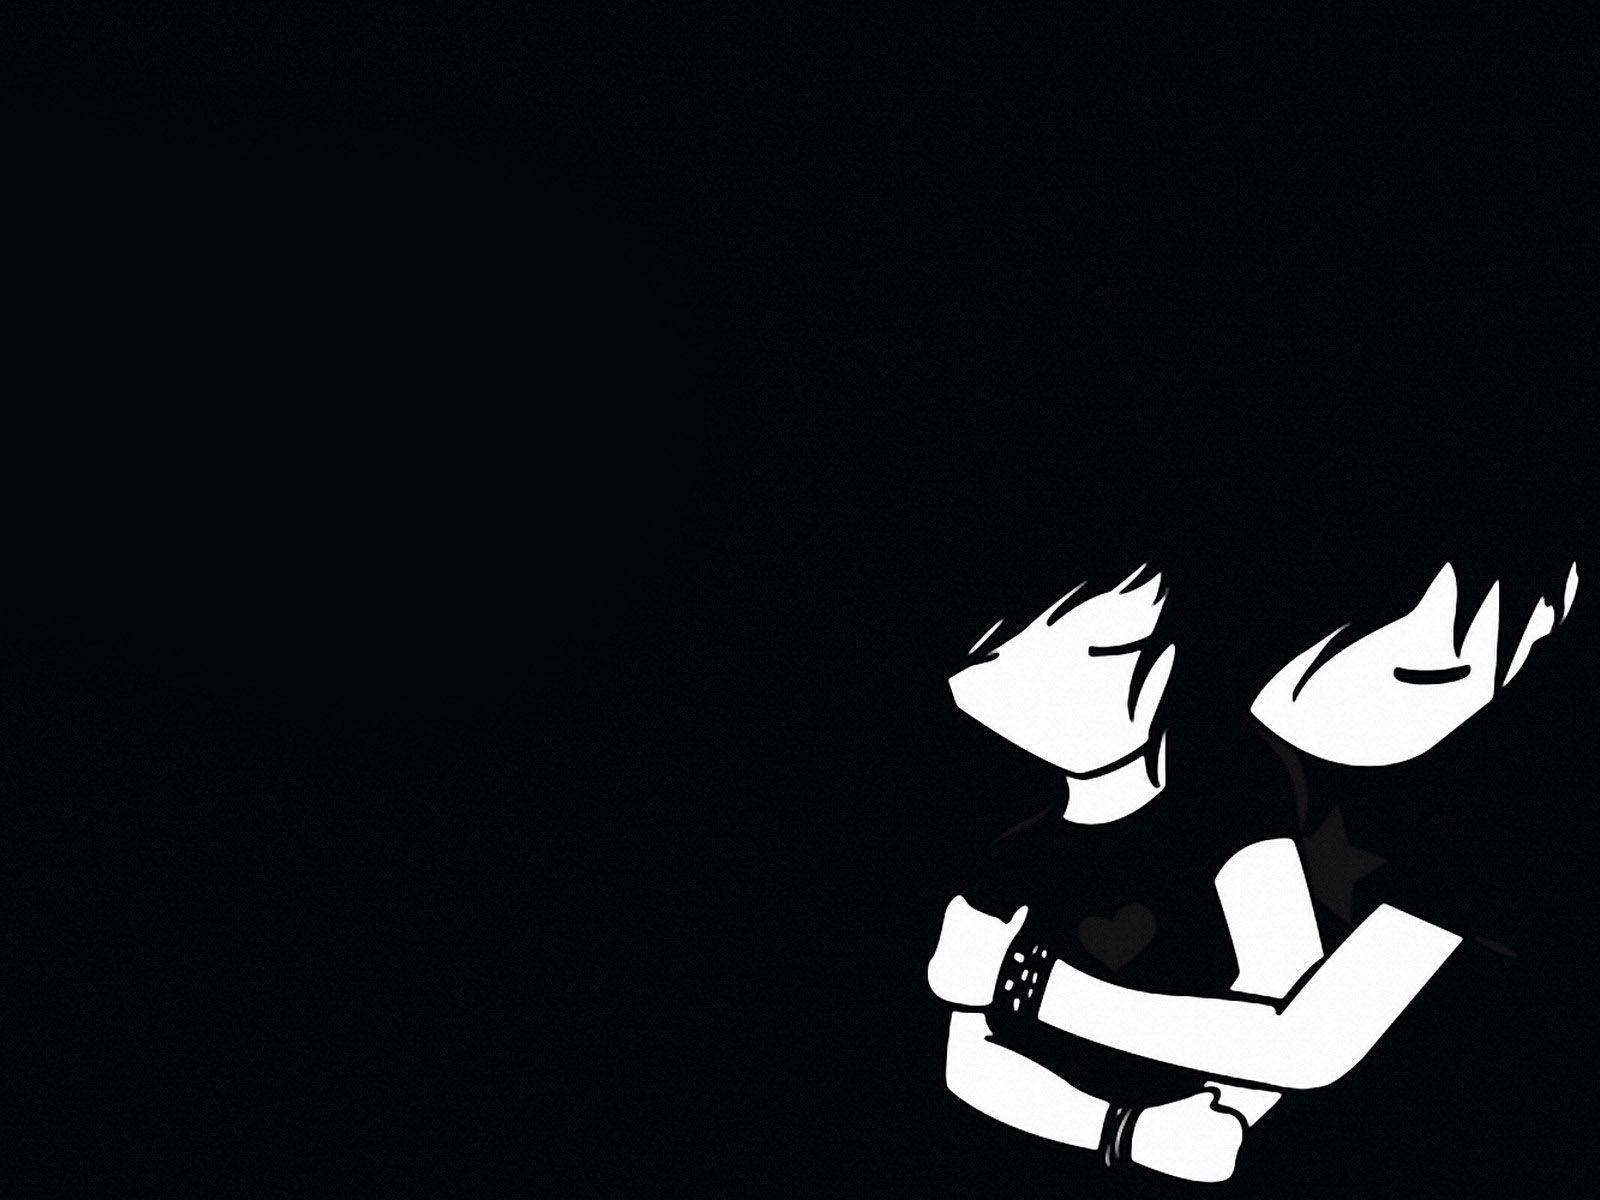 Emo Anime Wallpapers - Wallpaper cave